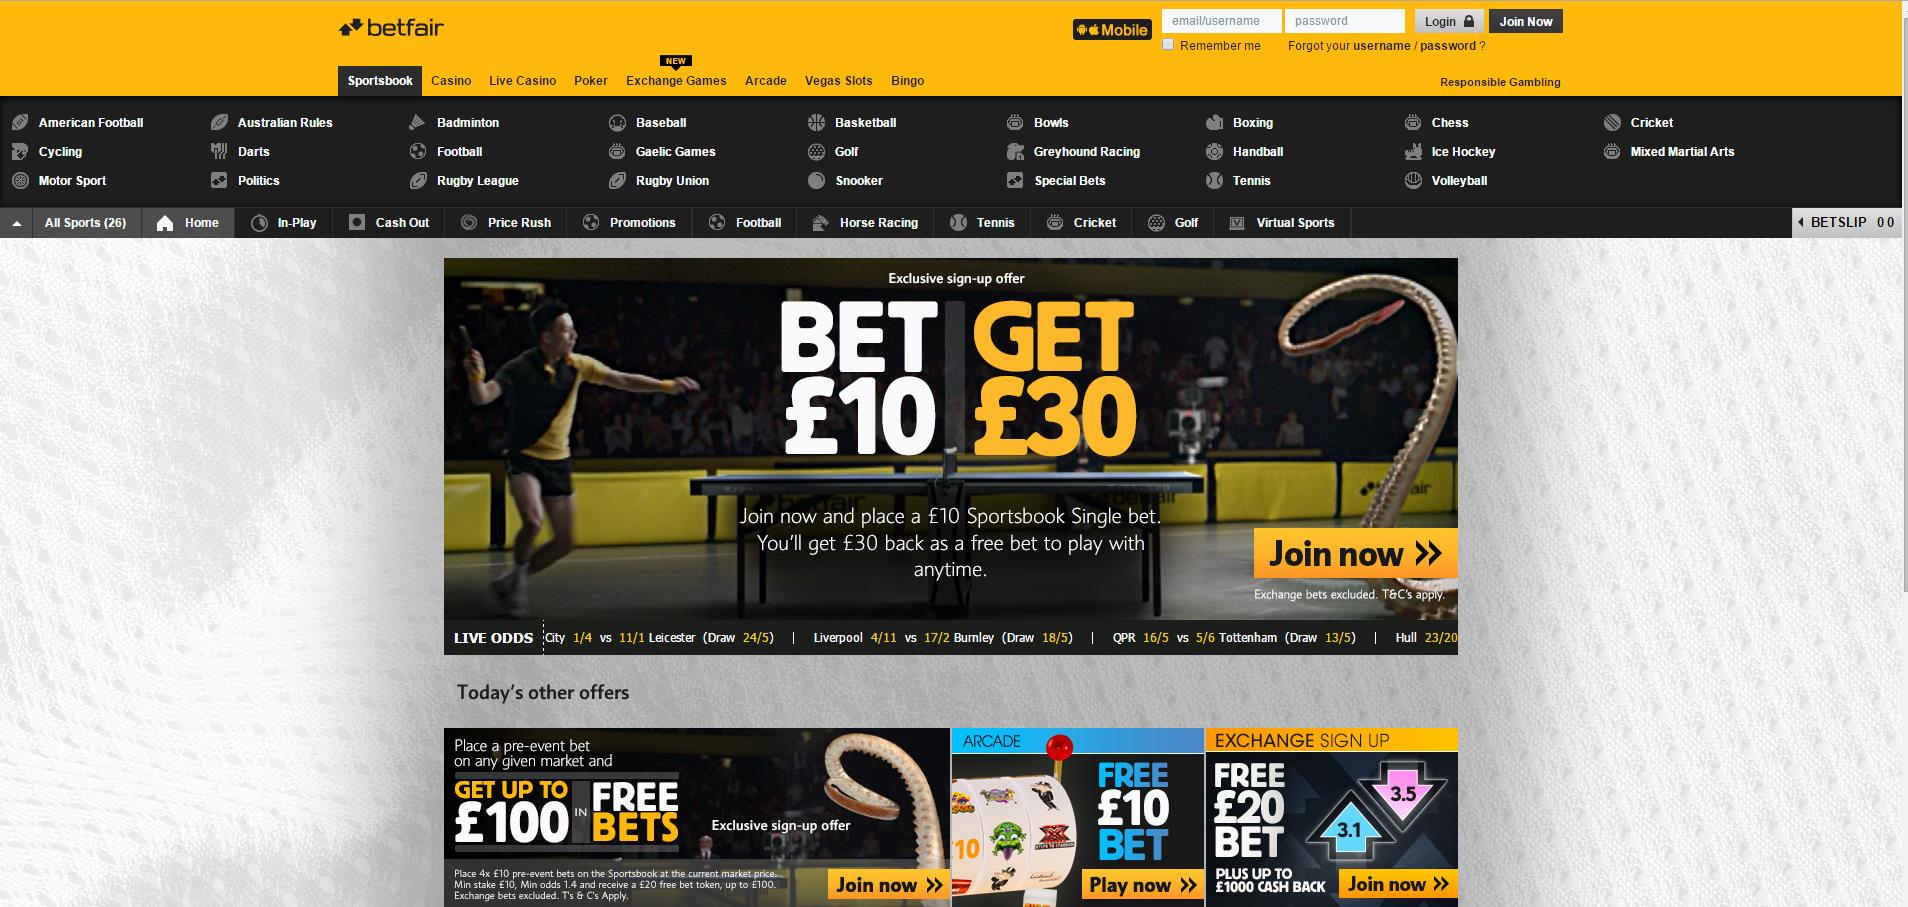 betfair screenshot website